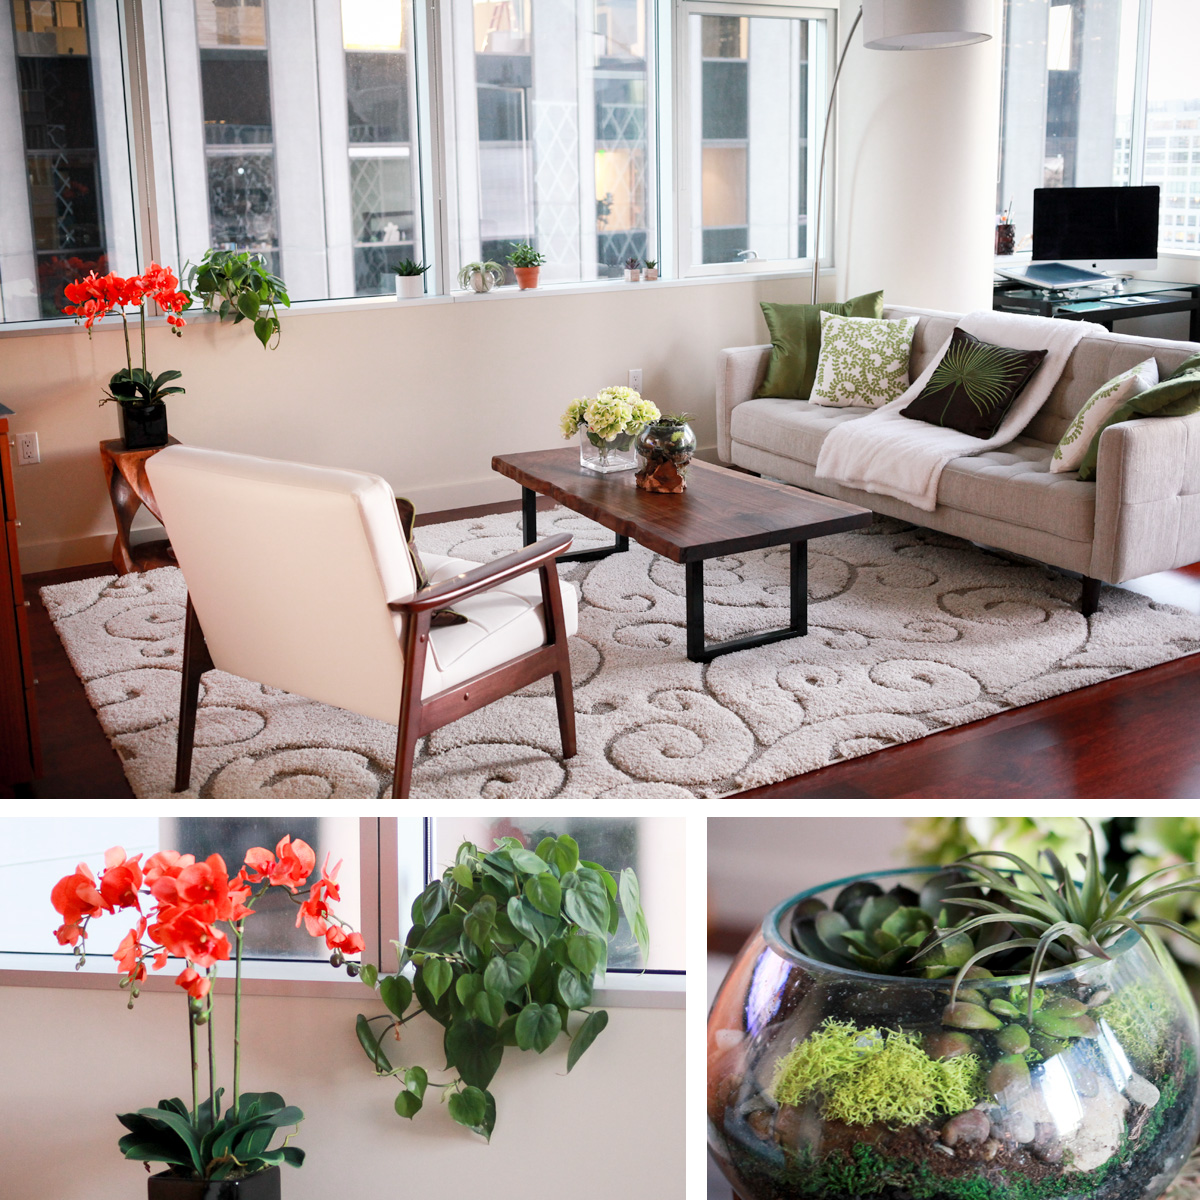 Midcentury Modern Interior Design with Houseplants